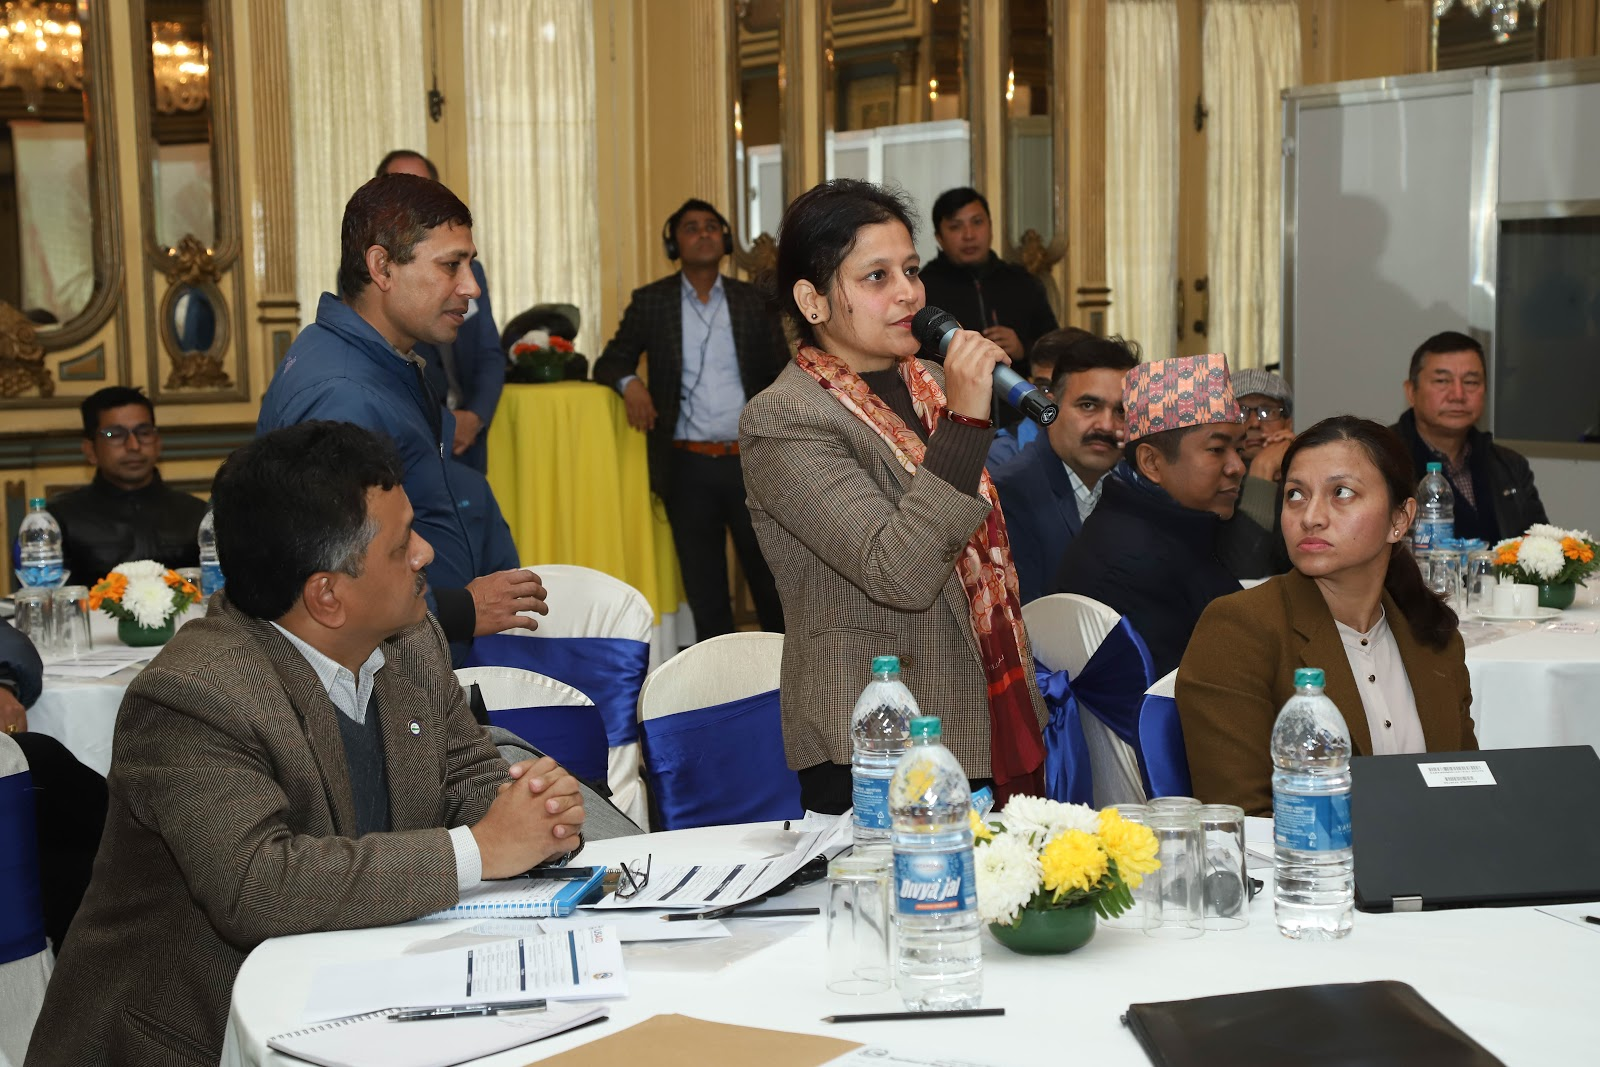 Staff from the Surkhet Valley Water Supply Users' Organization were among the participants in a USAID Business Plan Dissemination workshop in Kathmandu, in January 2020. Photo credit: Hari Neupane/WASH-FIN